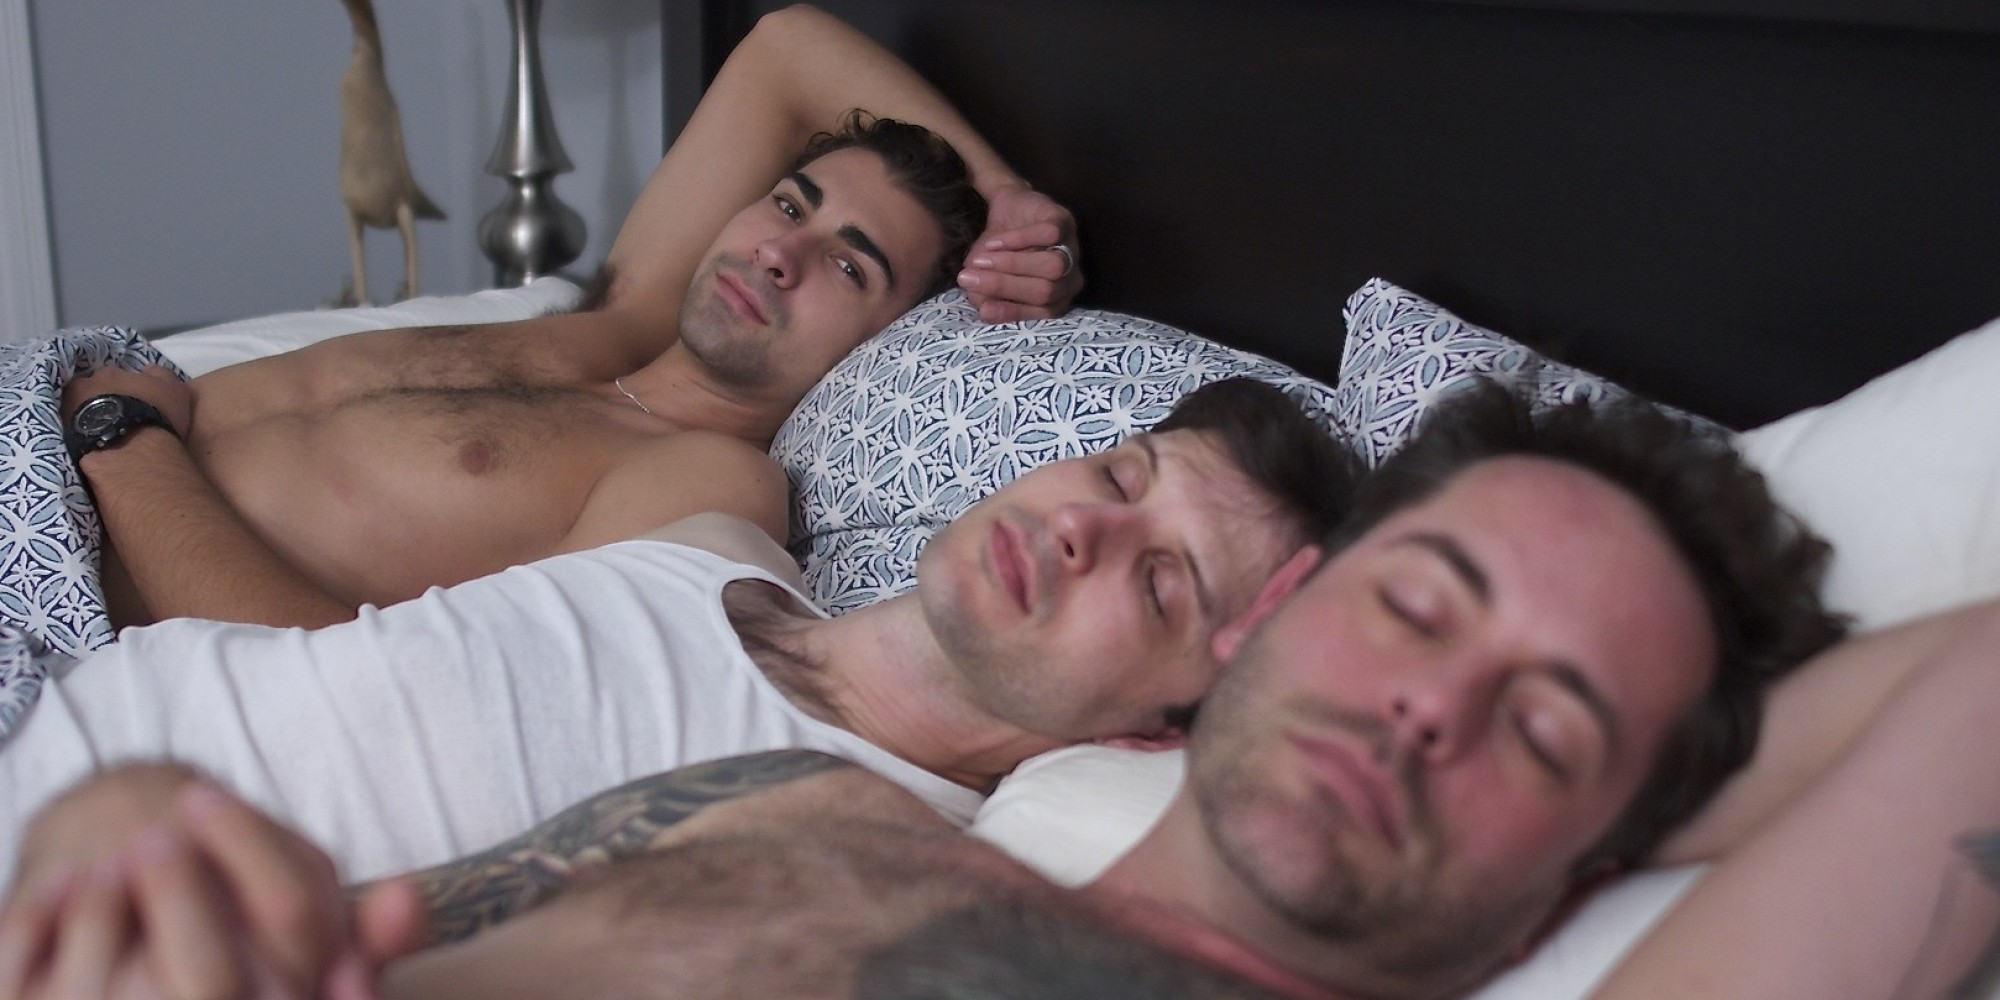 Cool gay sex web site